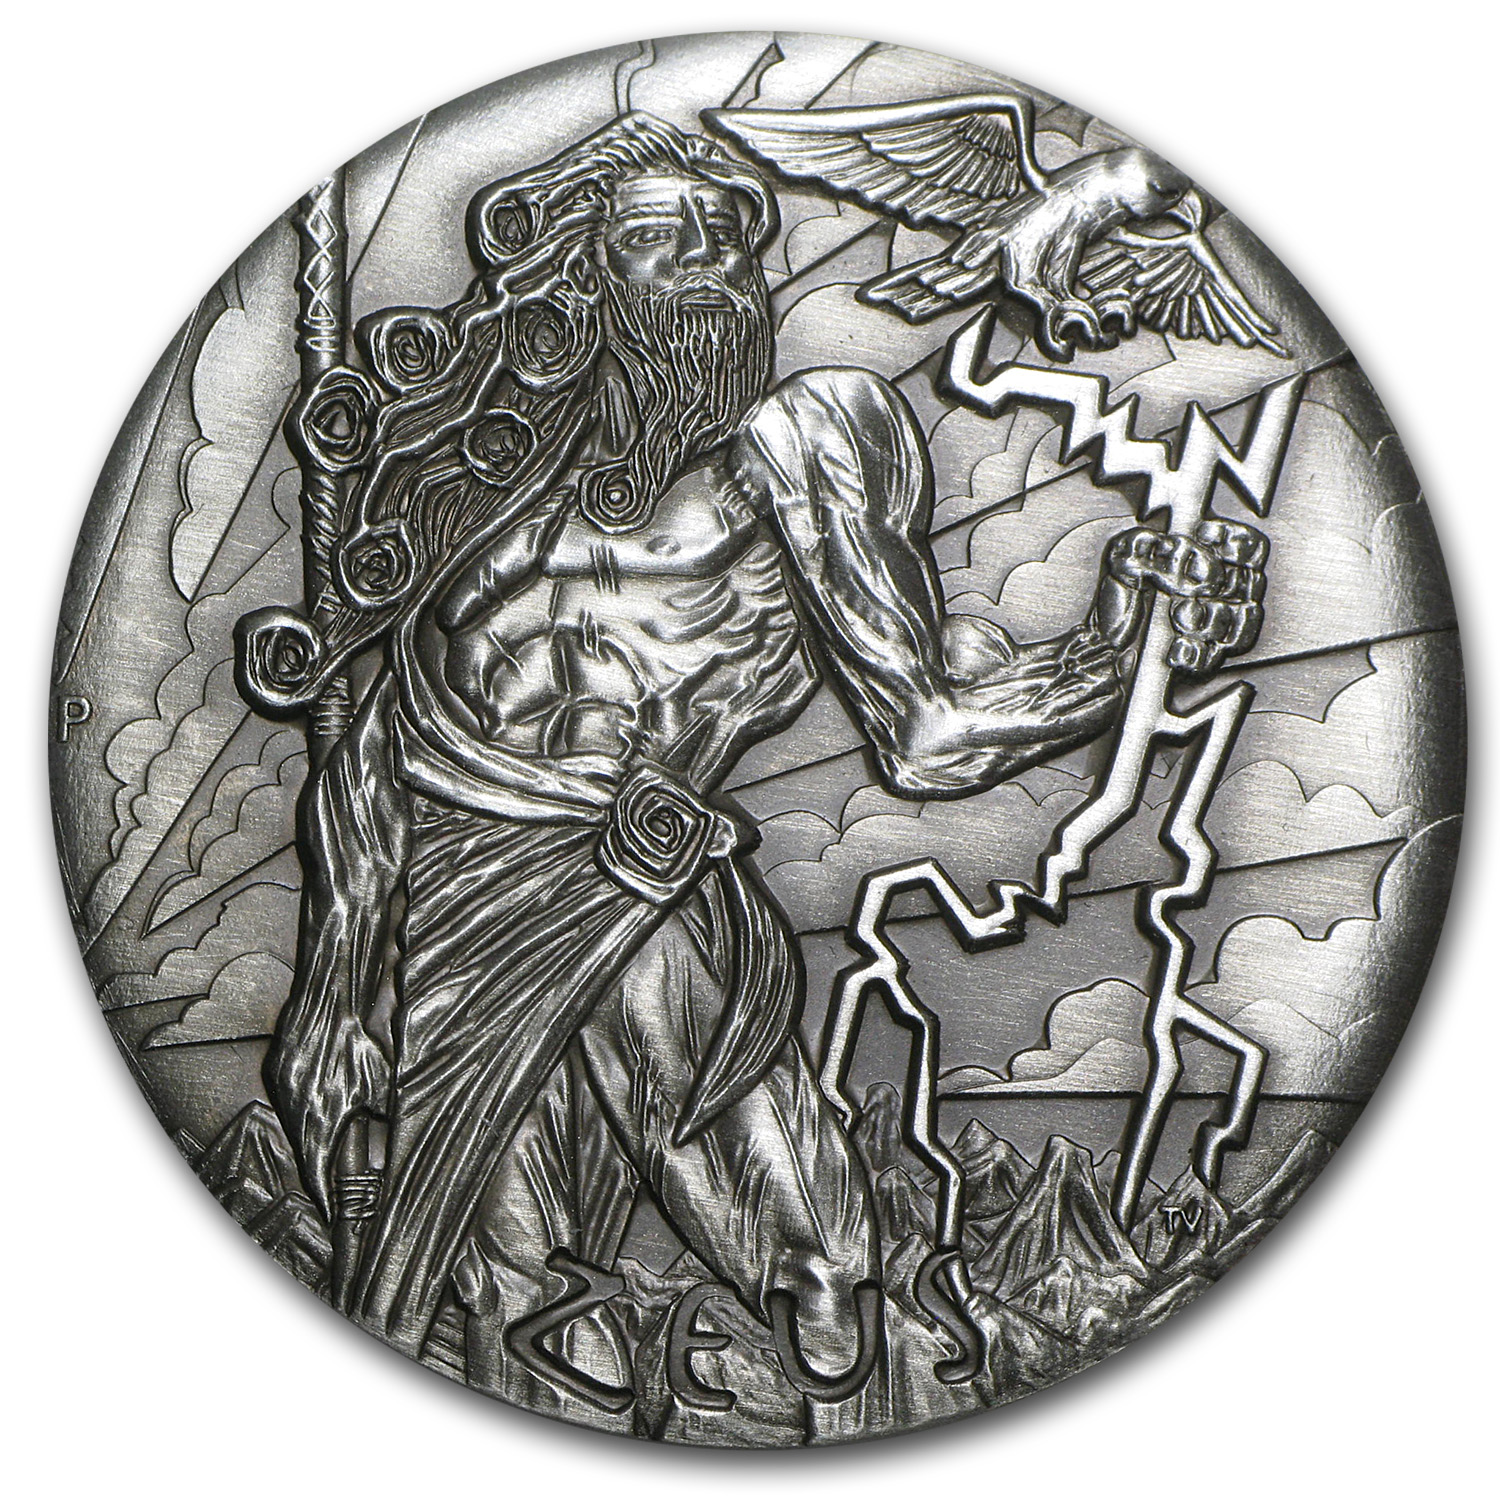 2014 2 oz Silver Tuvalu Gods of Olympus Zeus BU (High Relief)